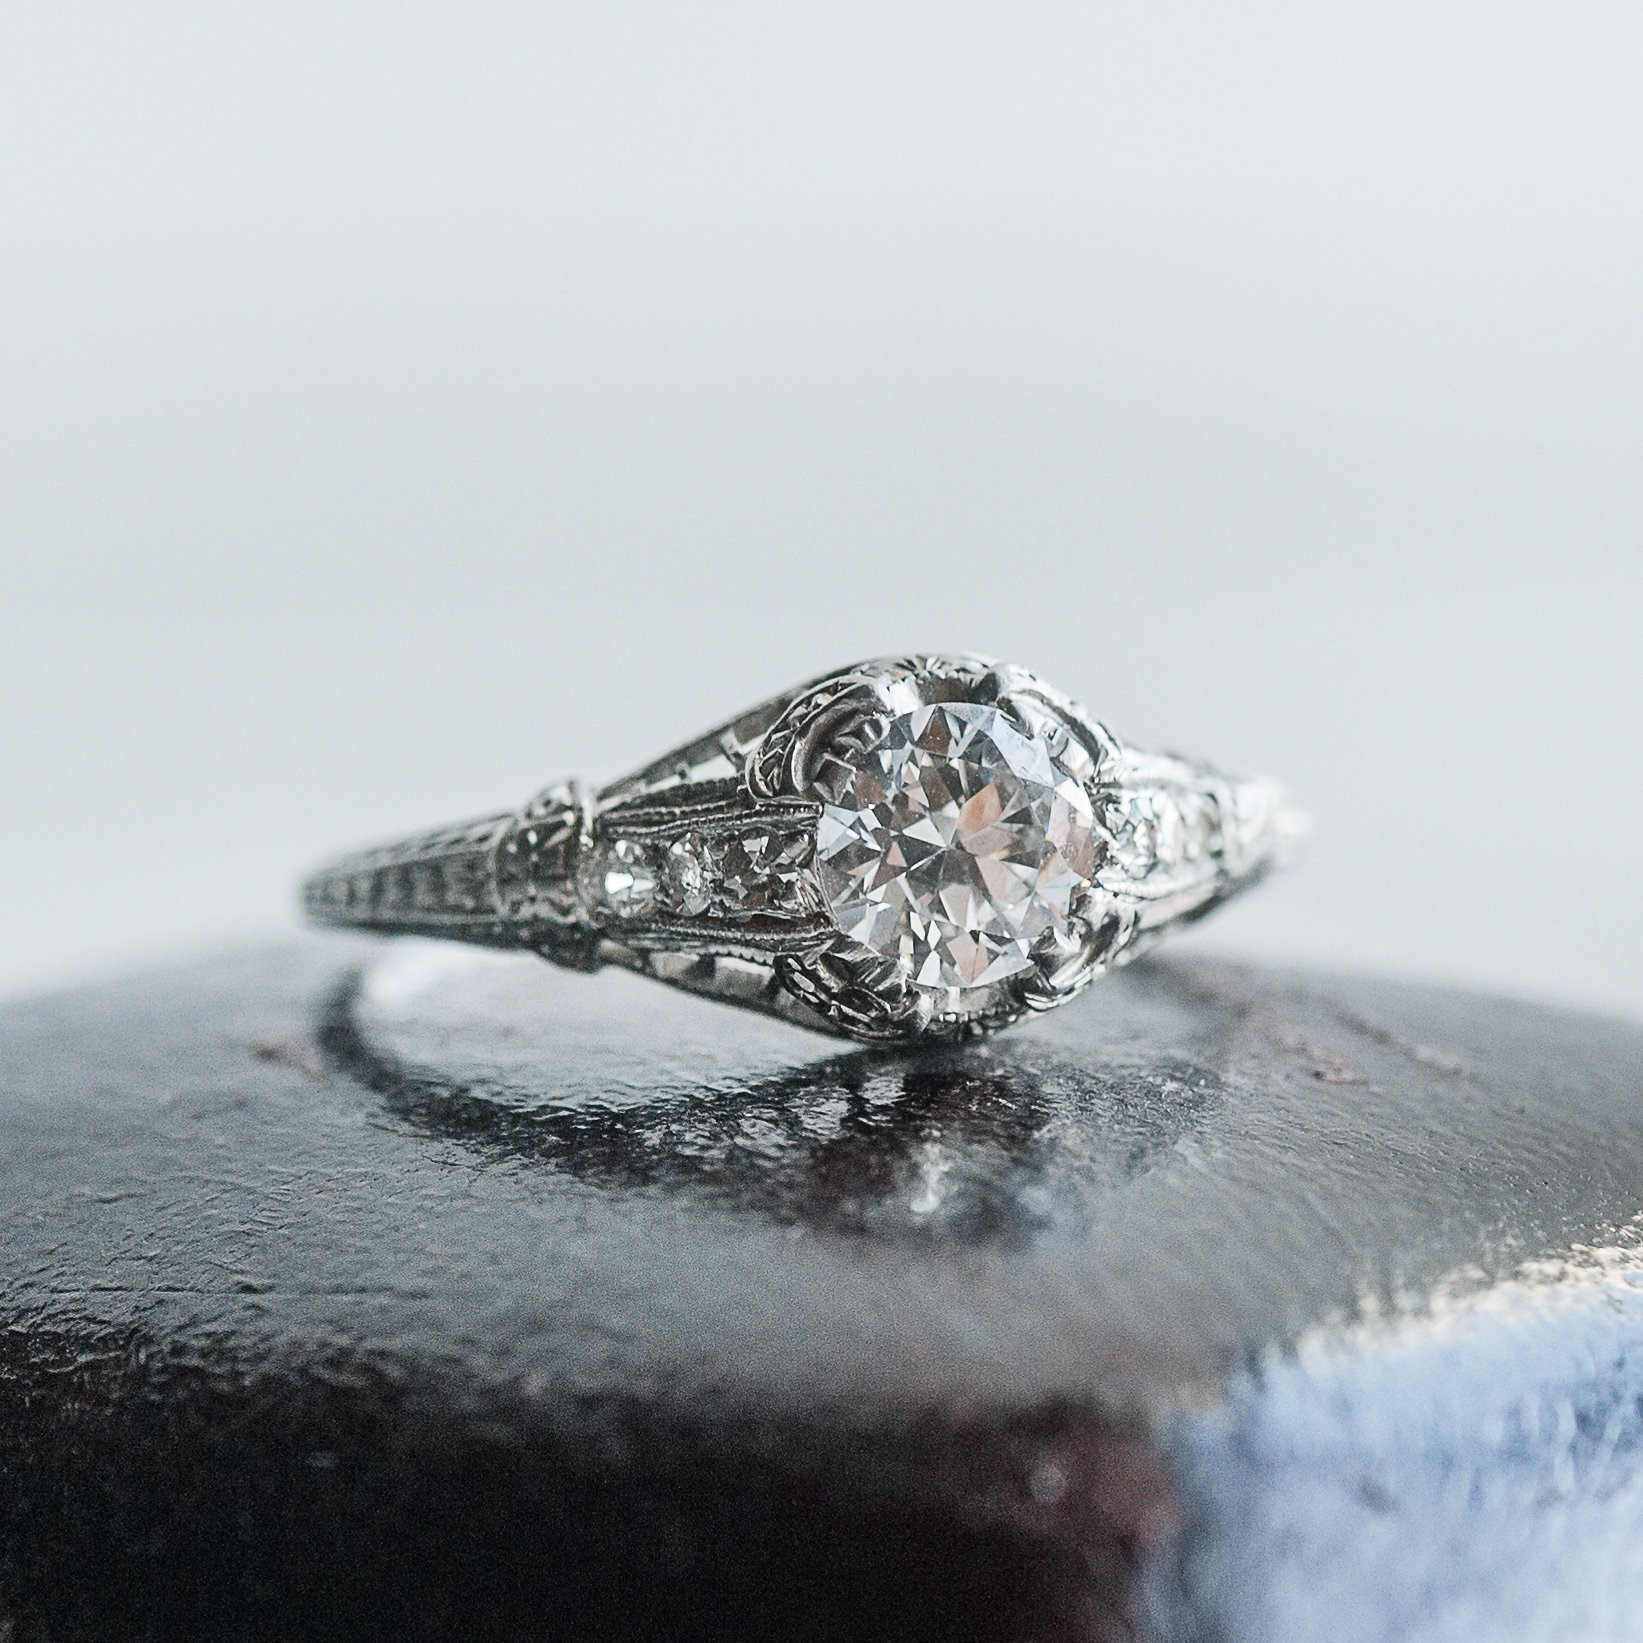 We are headed into the weekend dreaming of this beauty! Circa 1920's 0.57 carat Old European cut diamond paired with fabulous filigree and diamond details. Shop  HERE .